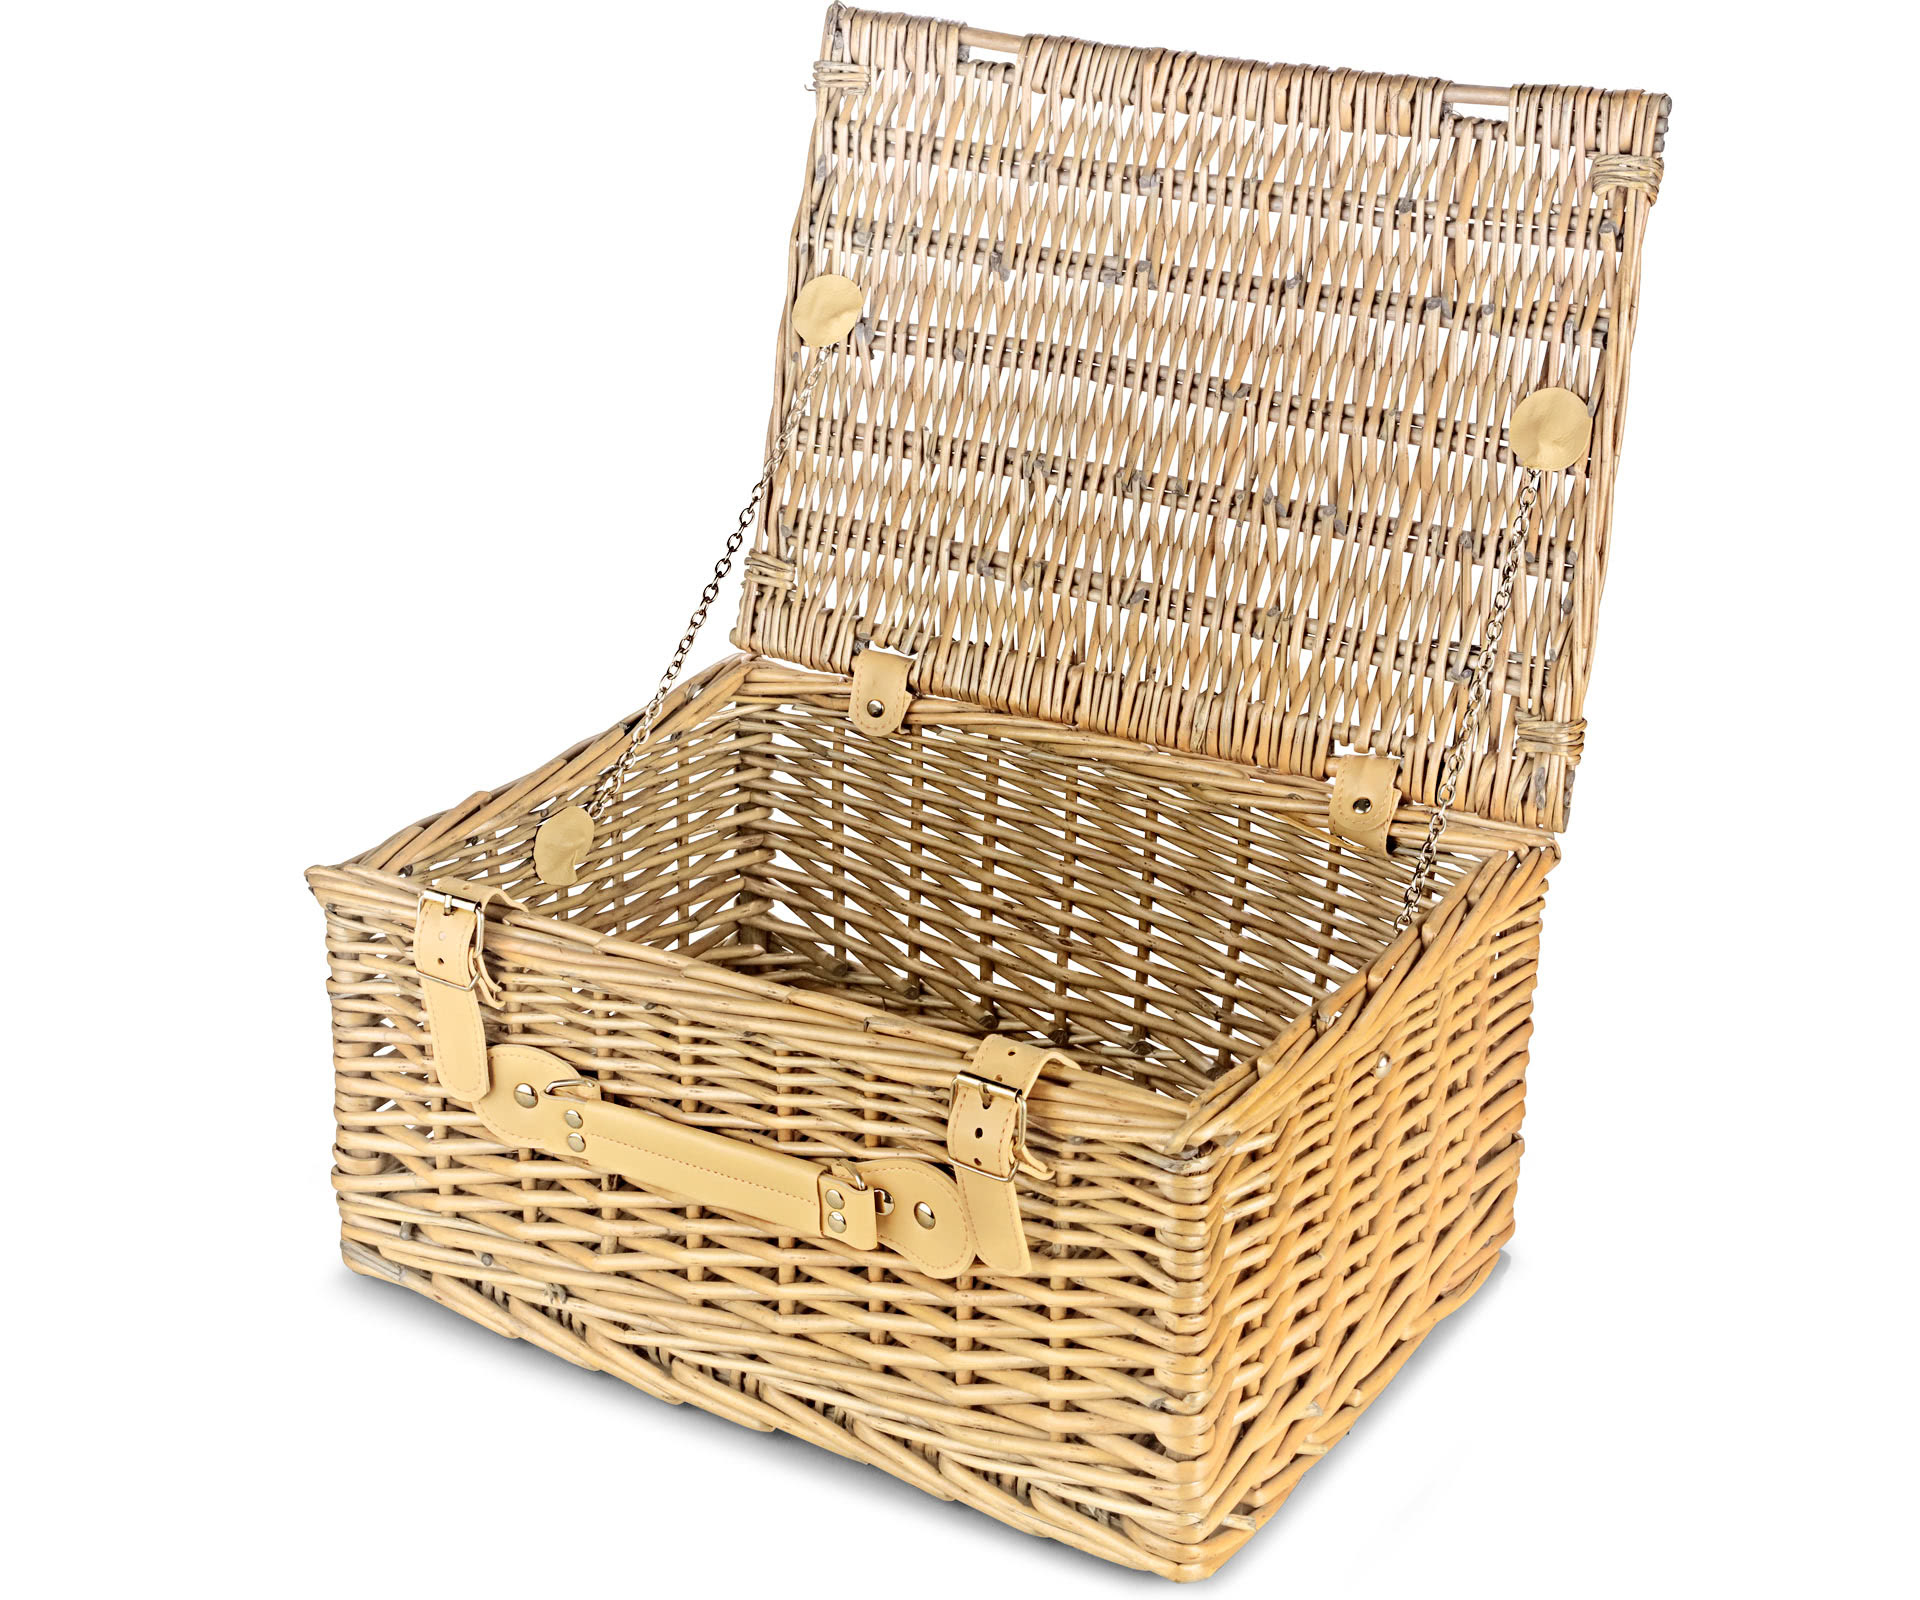 Empty Wicker Gift Baskets : Empty wicker hamper basket lidded large hampers